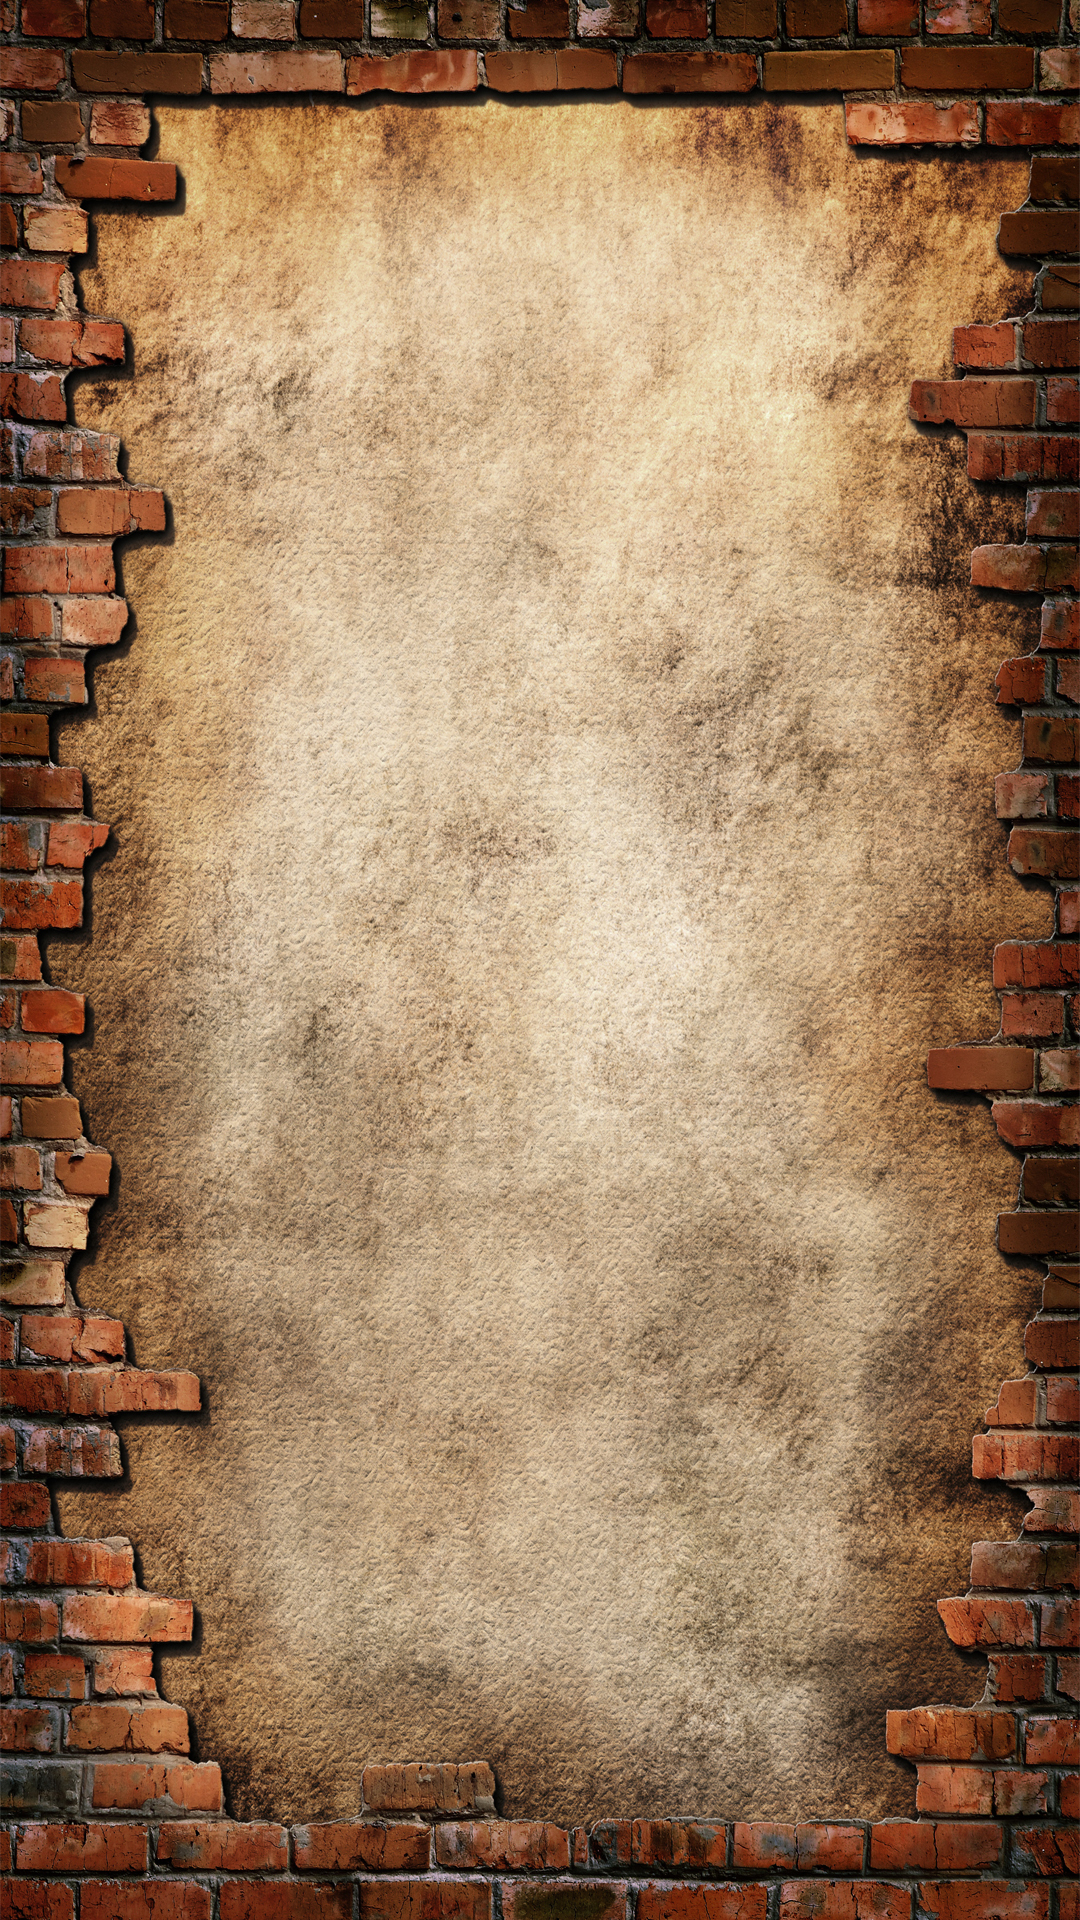 Fall Baby Animal Wallpaper H5 Old Wall Background Material Old Wall Brick